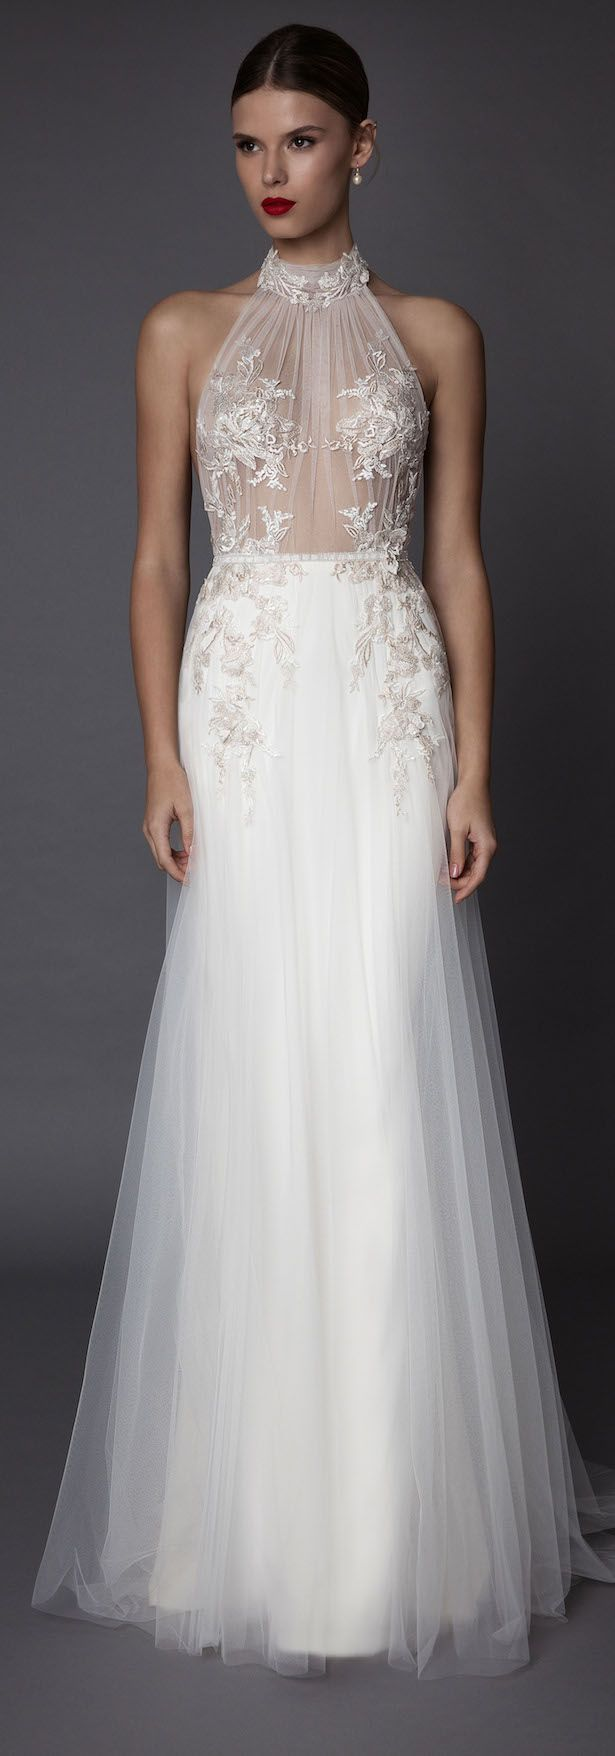 MUSE by Berta Fall 2017 Bridal Collection presents feminine wedding dresses with modern vibes. They are a dream come true for the fashion-forward bride.